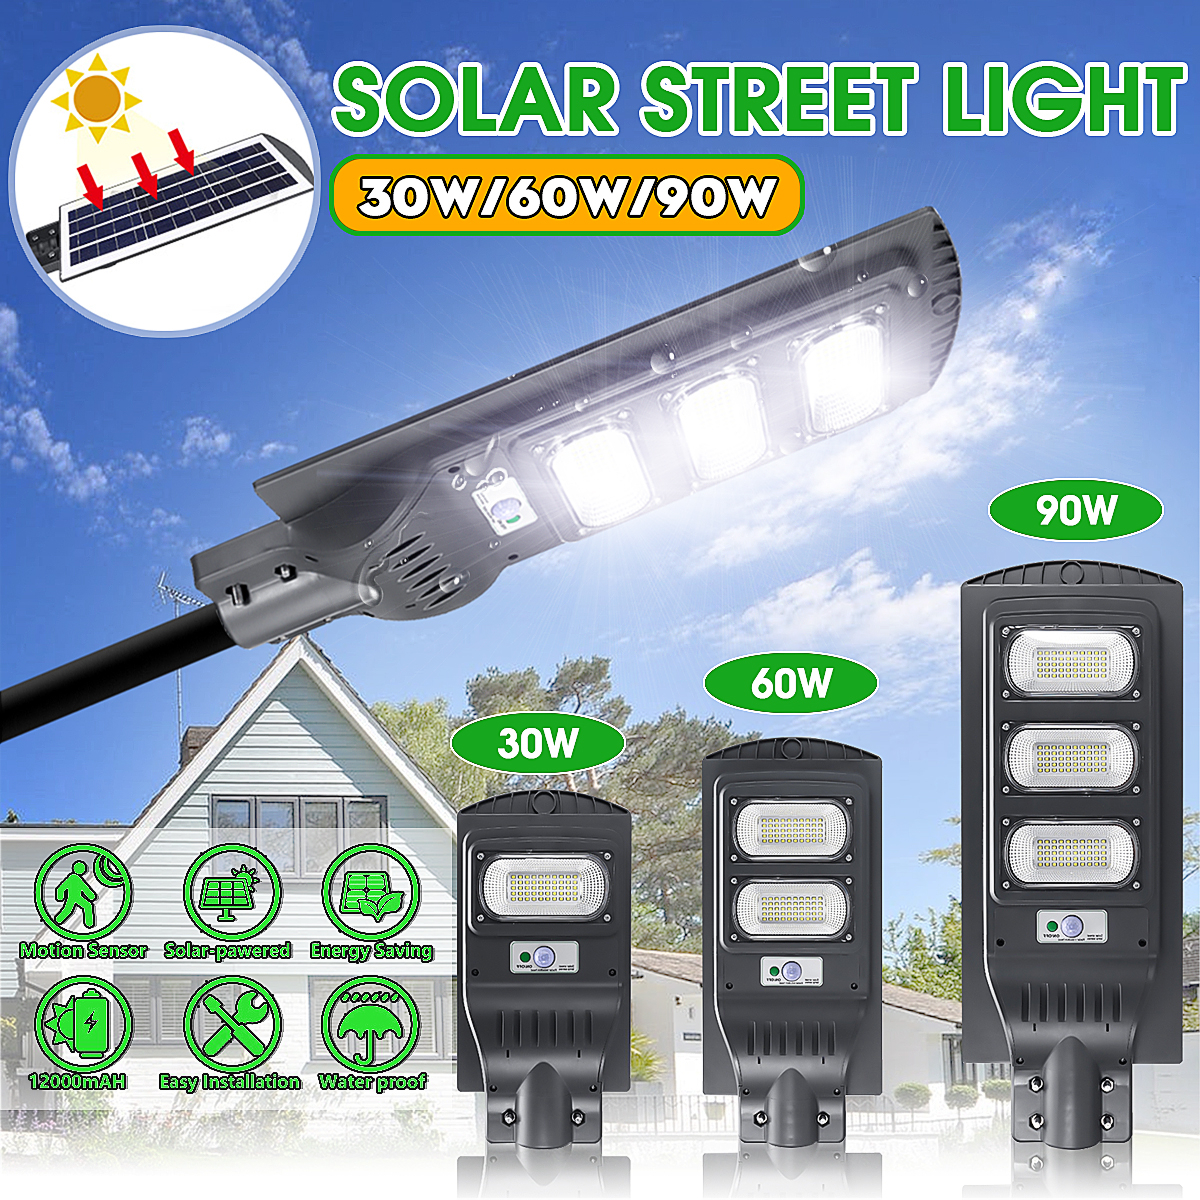 LED Street Light 30/60/90W LED Solar Light Radar PIR Motion Sensor Wall Timing Lamp+Remote Waterproof for Plaza Garden Yard